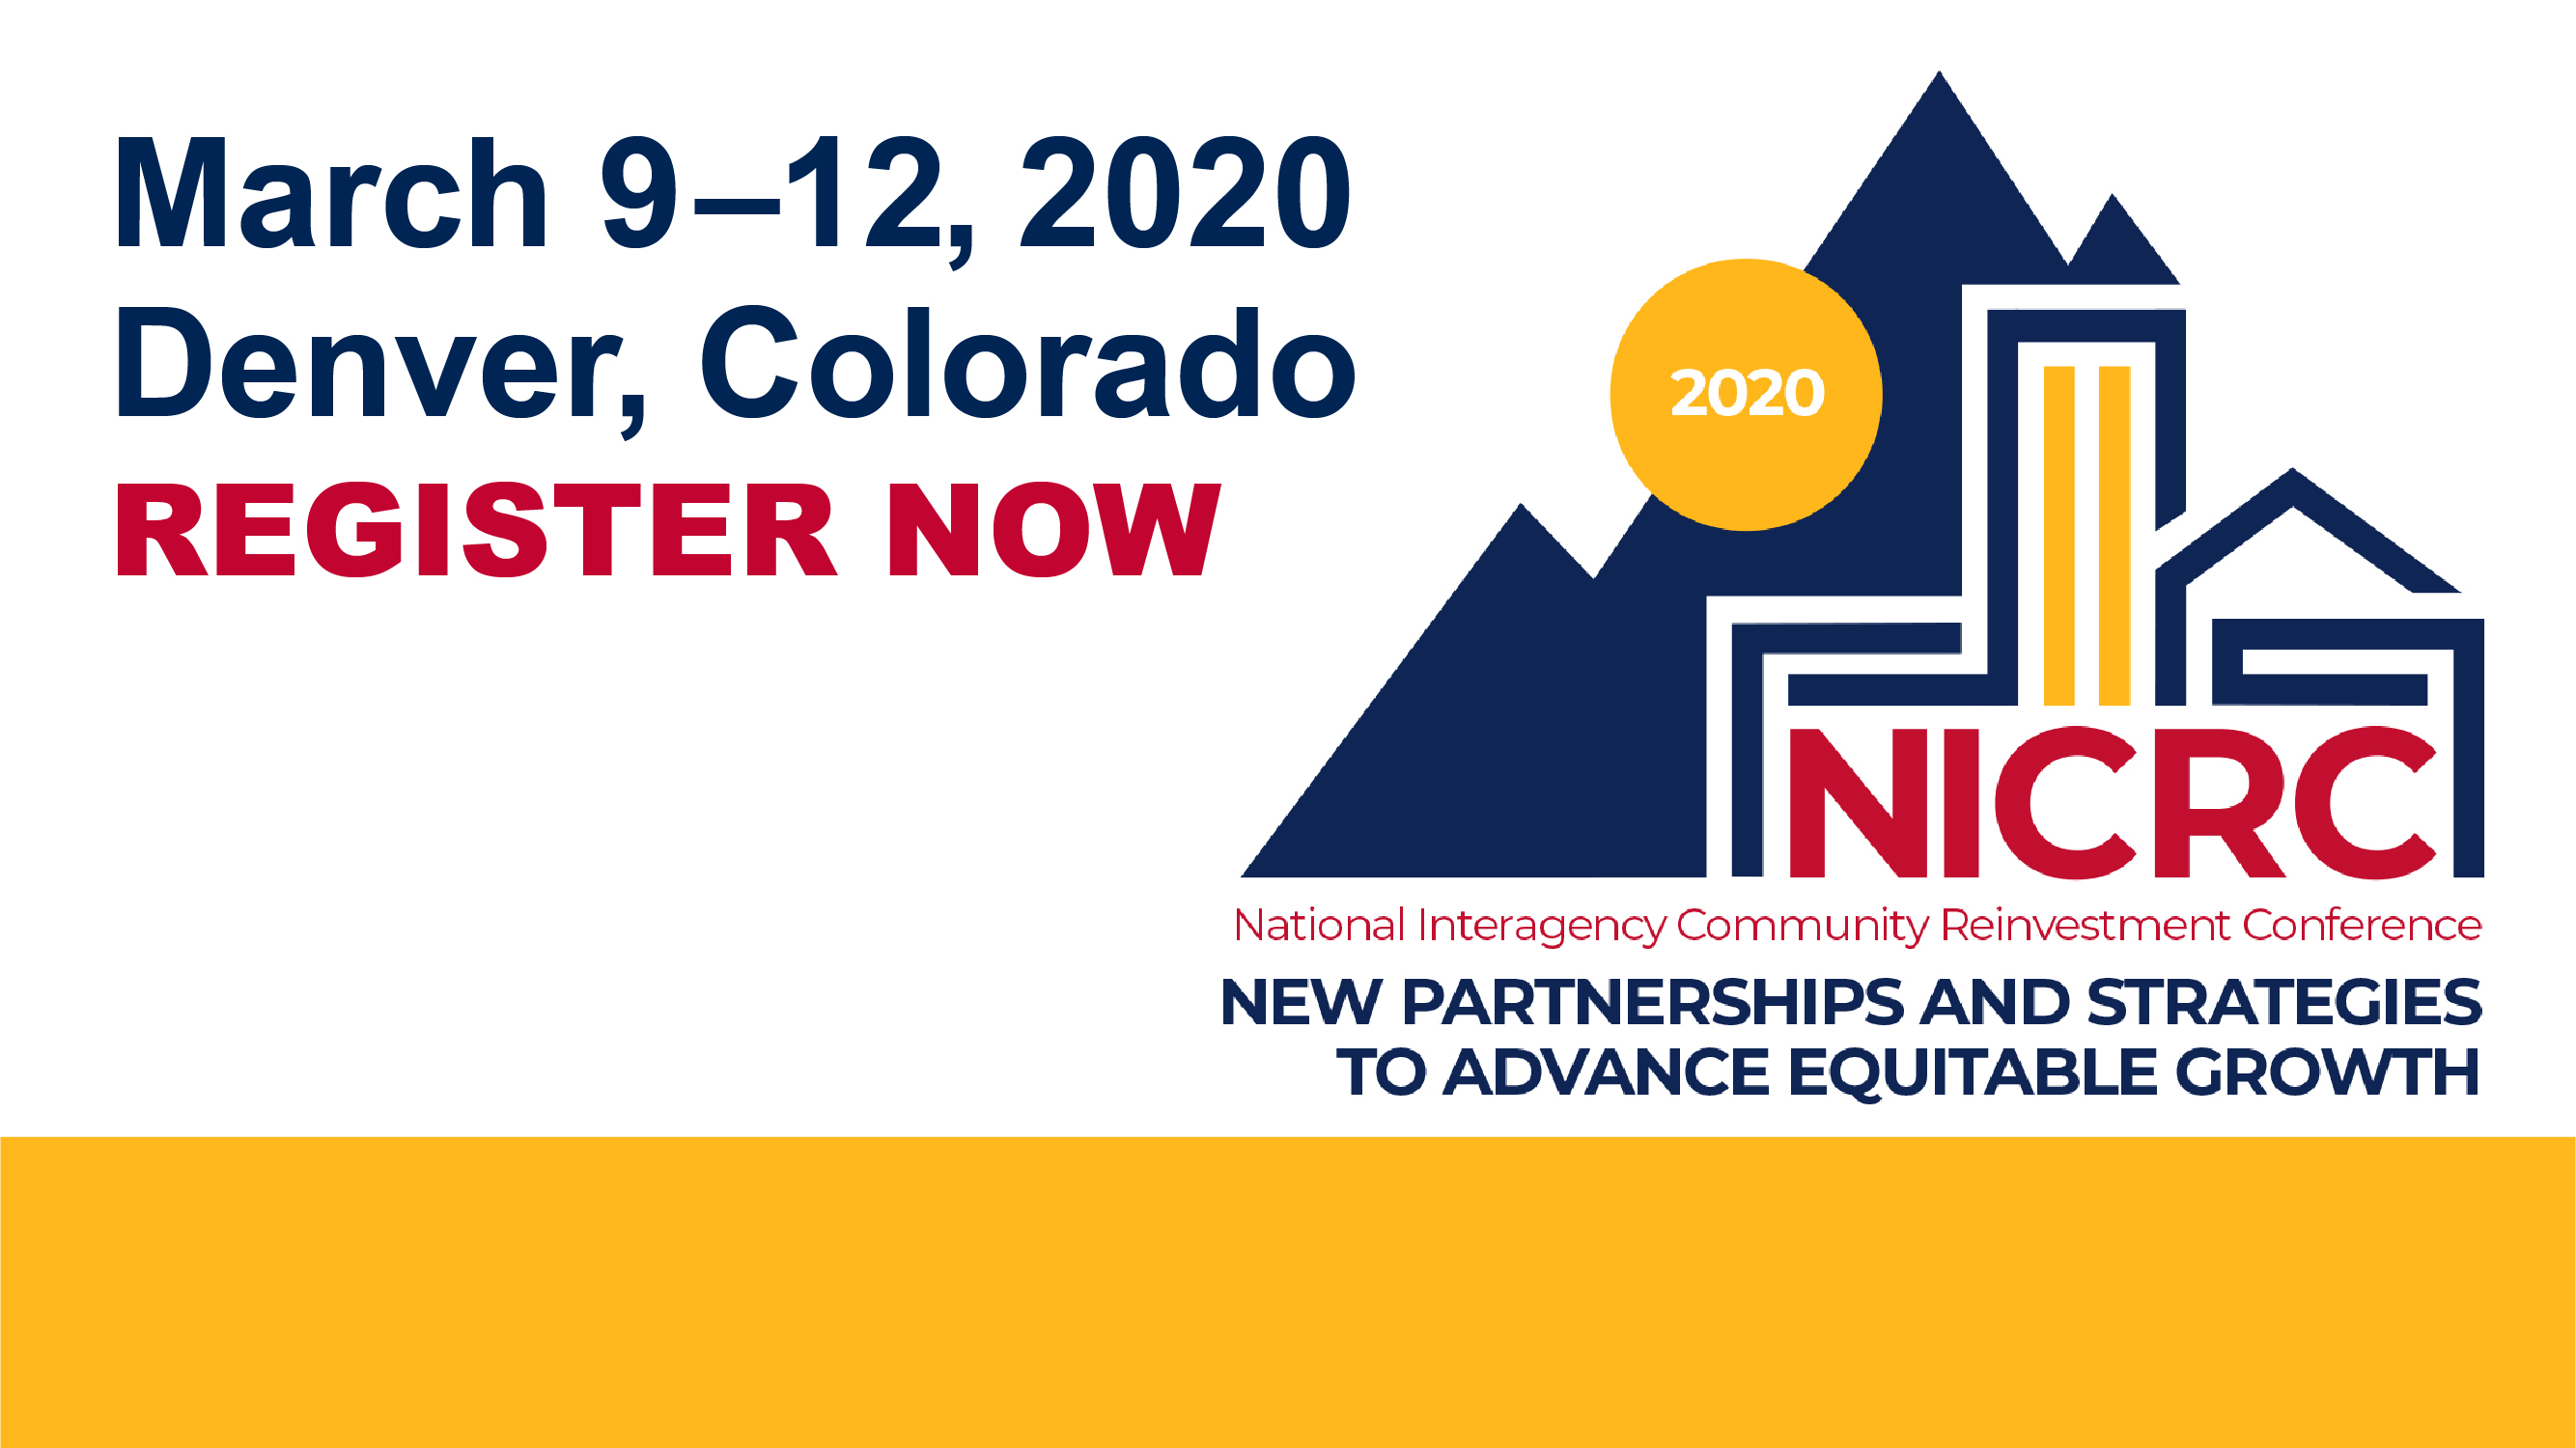 Register for the National Interagency Community Reinvestment Conference on March 9-12, 2020 in Denver, CO